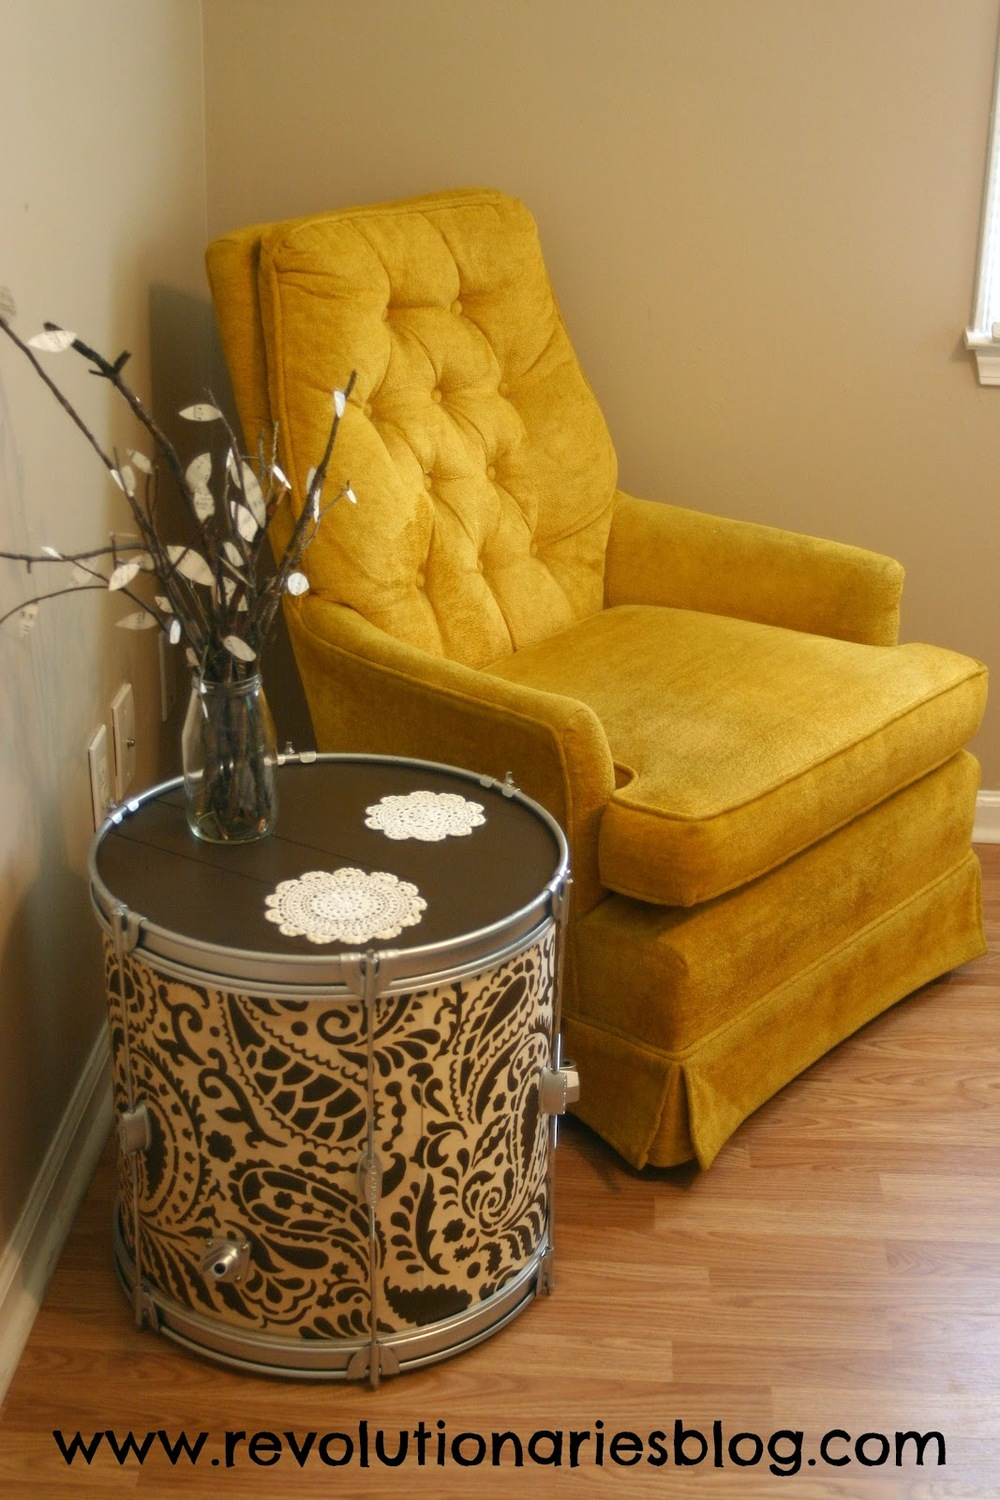 drum-table-with-doilies.jpg